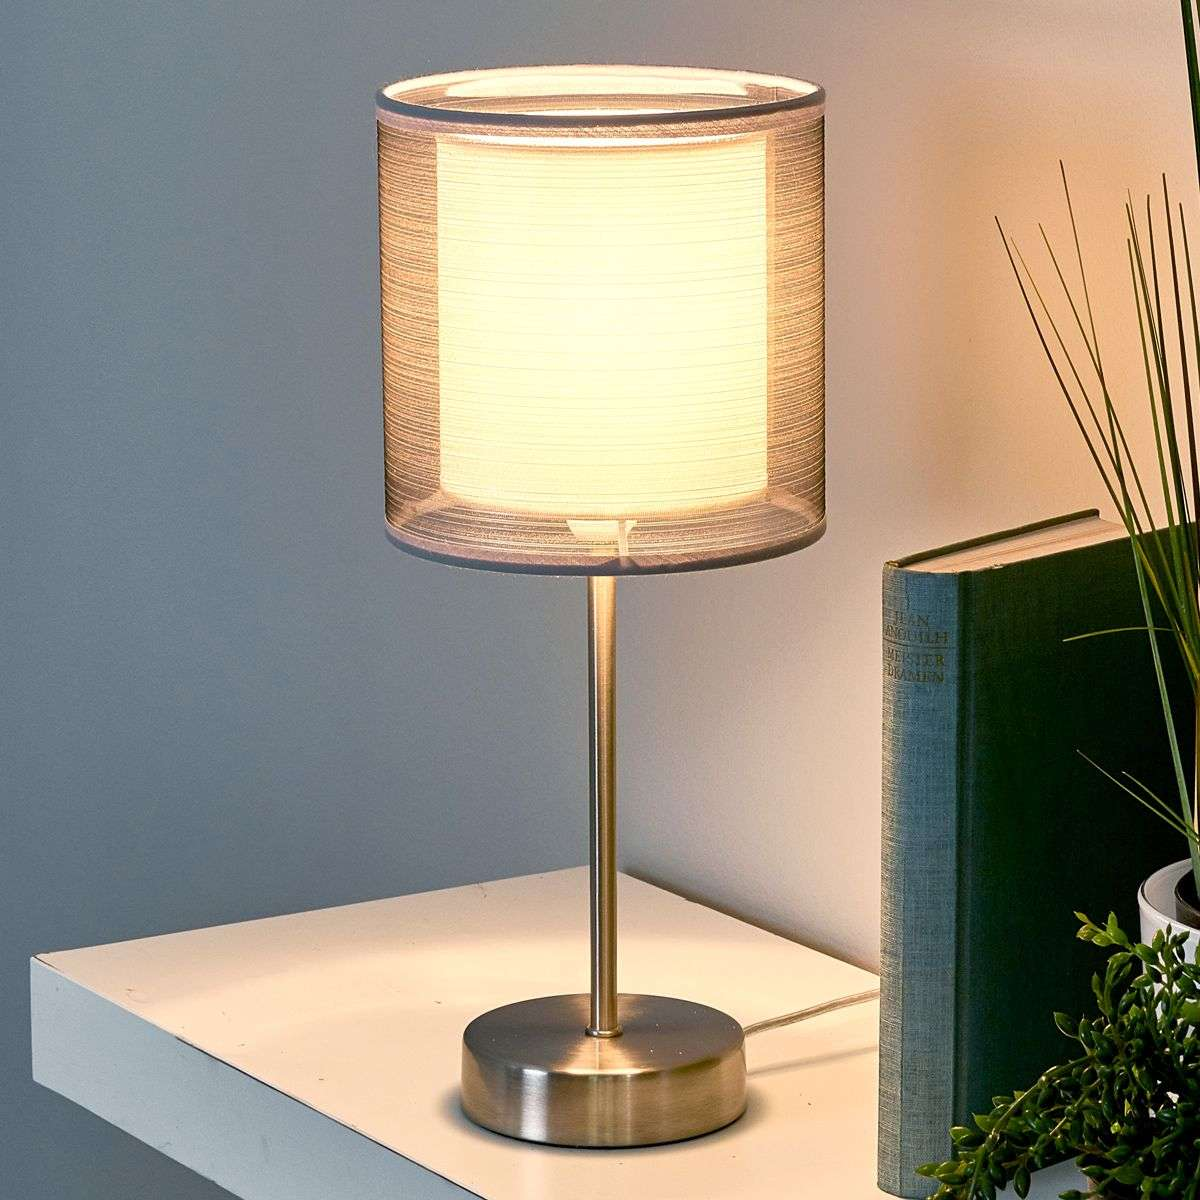 attractive nica bedside table lamp in grey. Black Bedroom Furniture Sets. Home Design Ideas